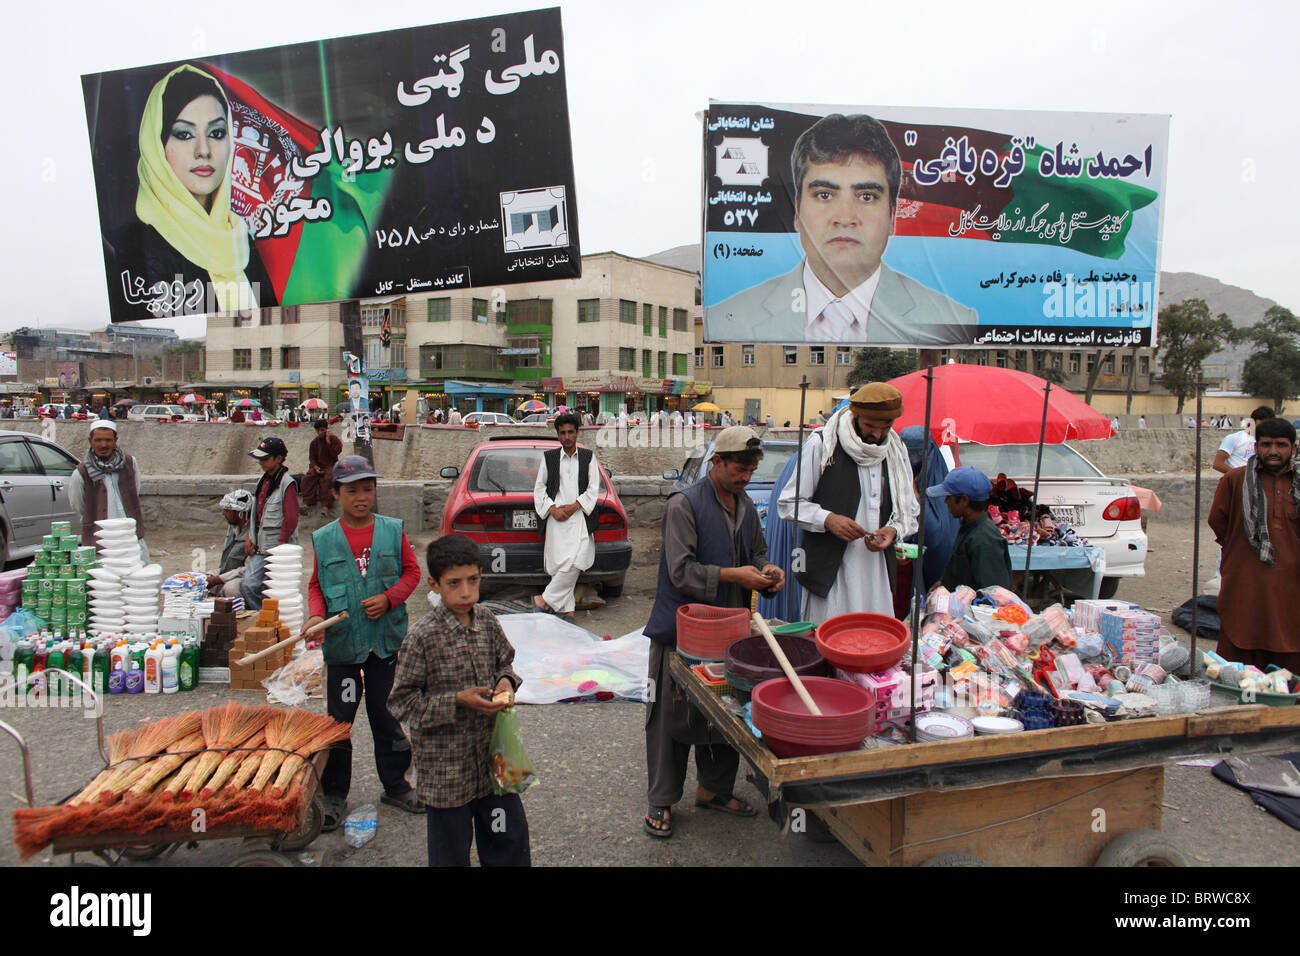 posters for parliamentary elections (September 2010) in kabul - Stock Image